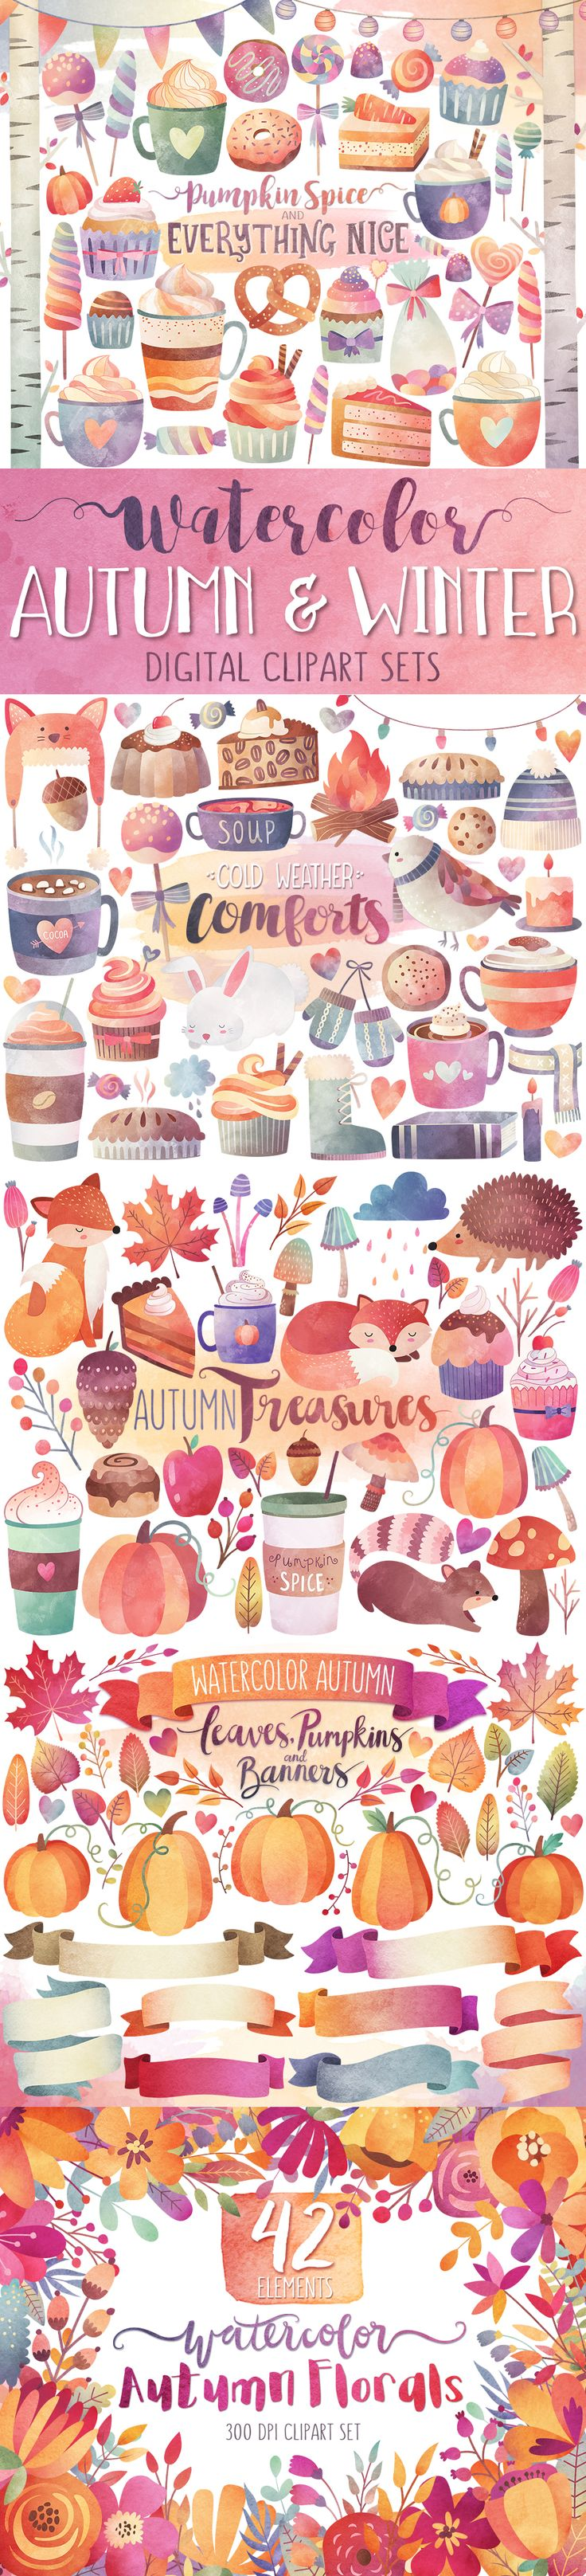 Beautiful Autumn & Winter Watercolor Clipart Sets - Only $1.79!